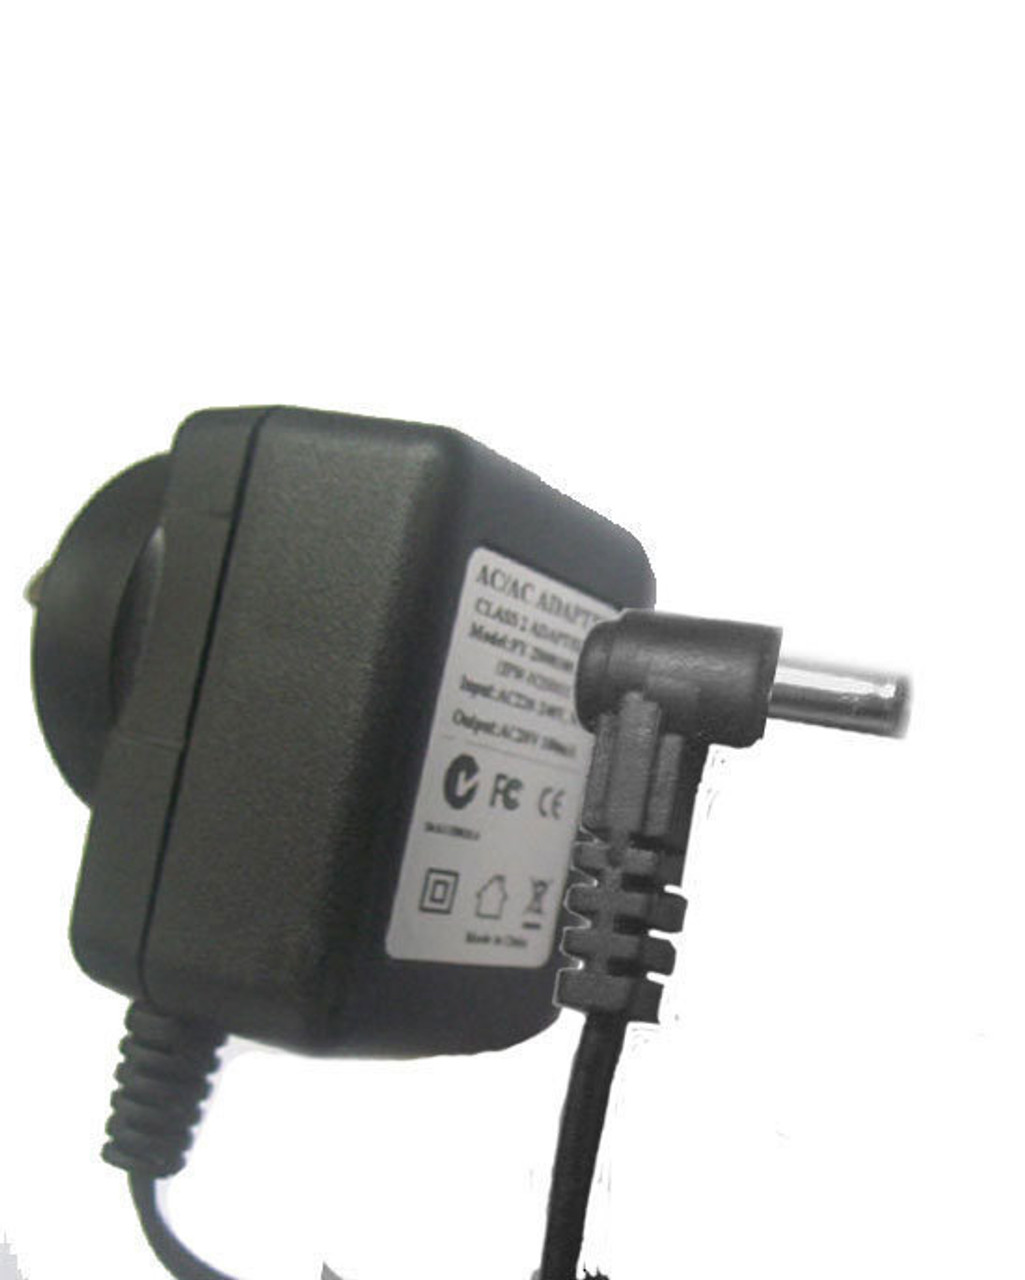 La Crosse PS-600MA Power Adaptor for LTC View Weather Stations